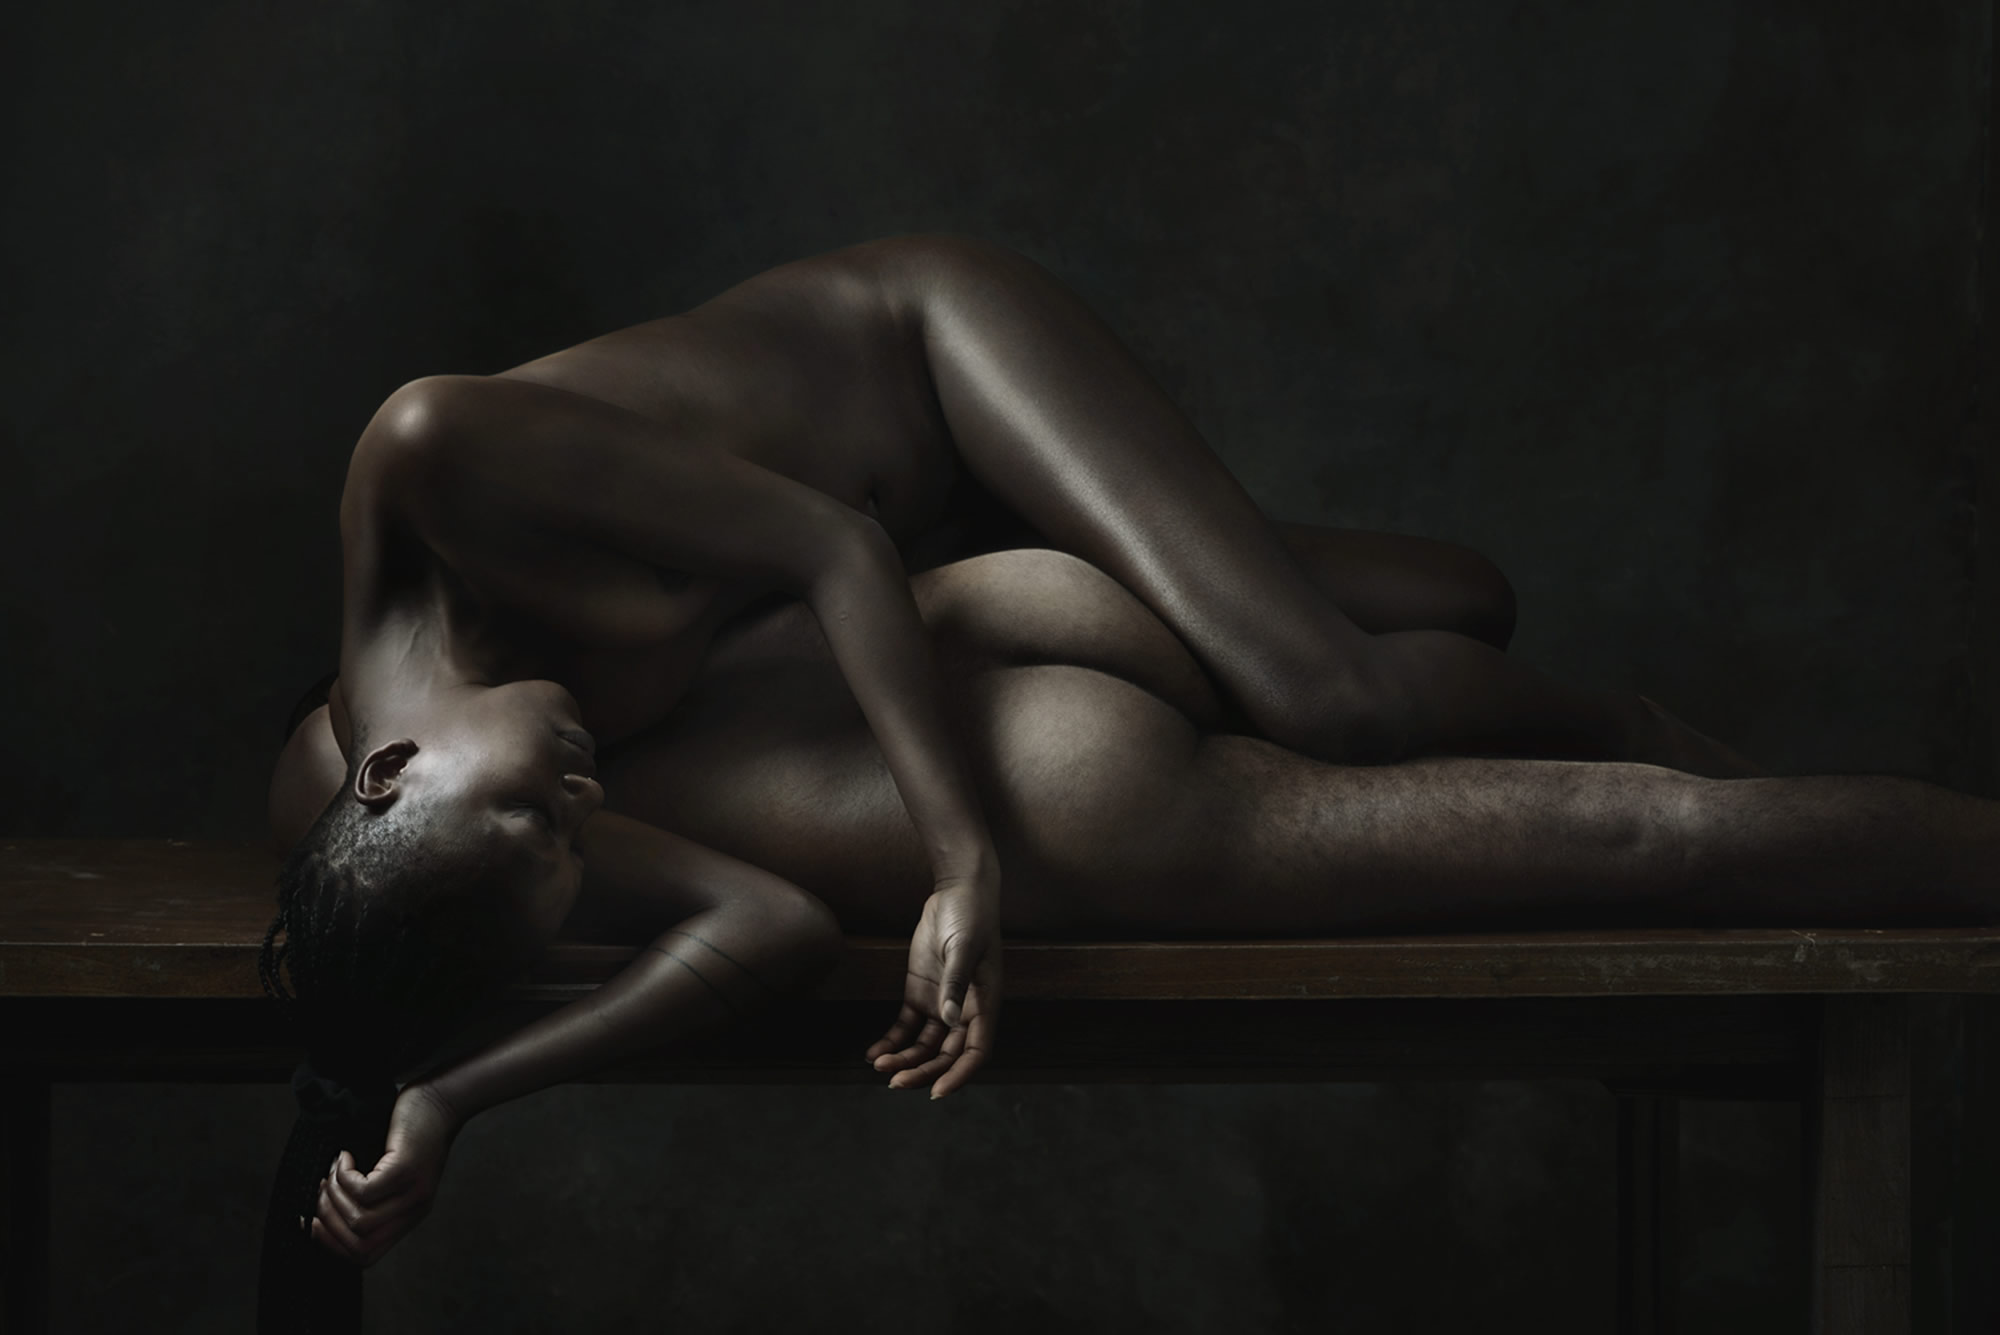 bodies, fine art photography drifting series, photography by Olivier Valsecchi